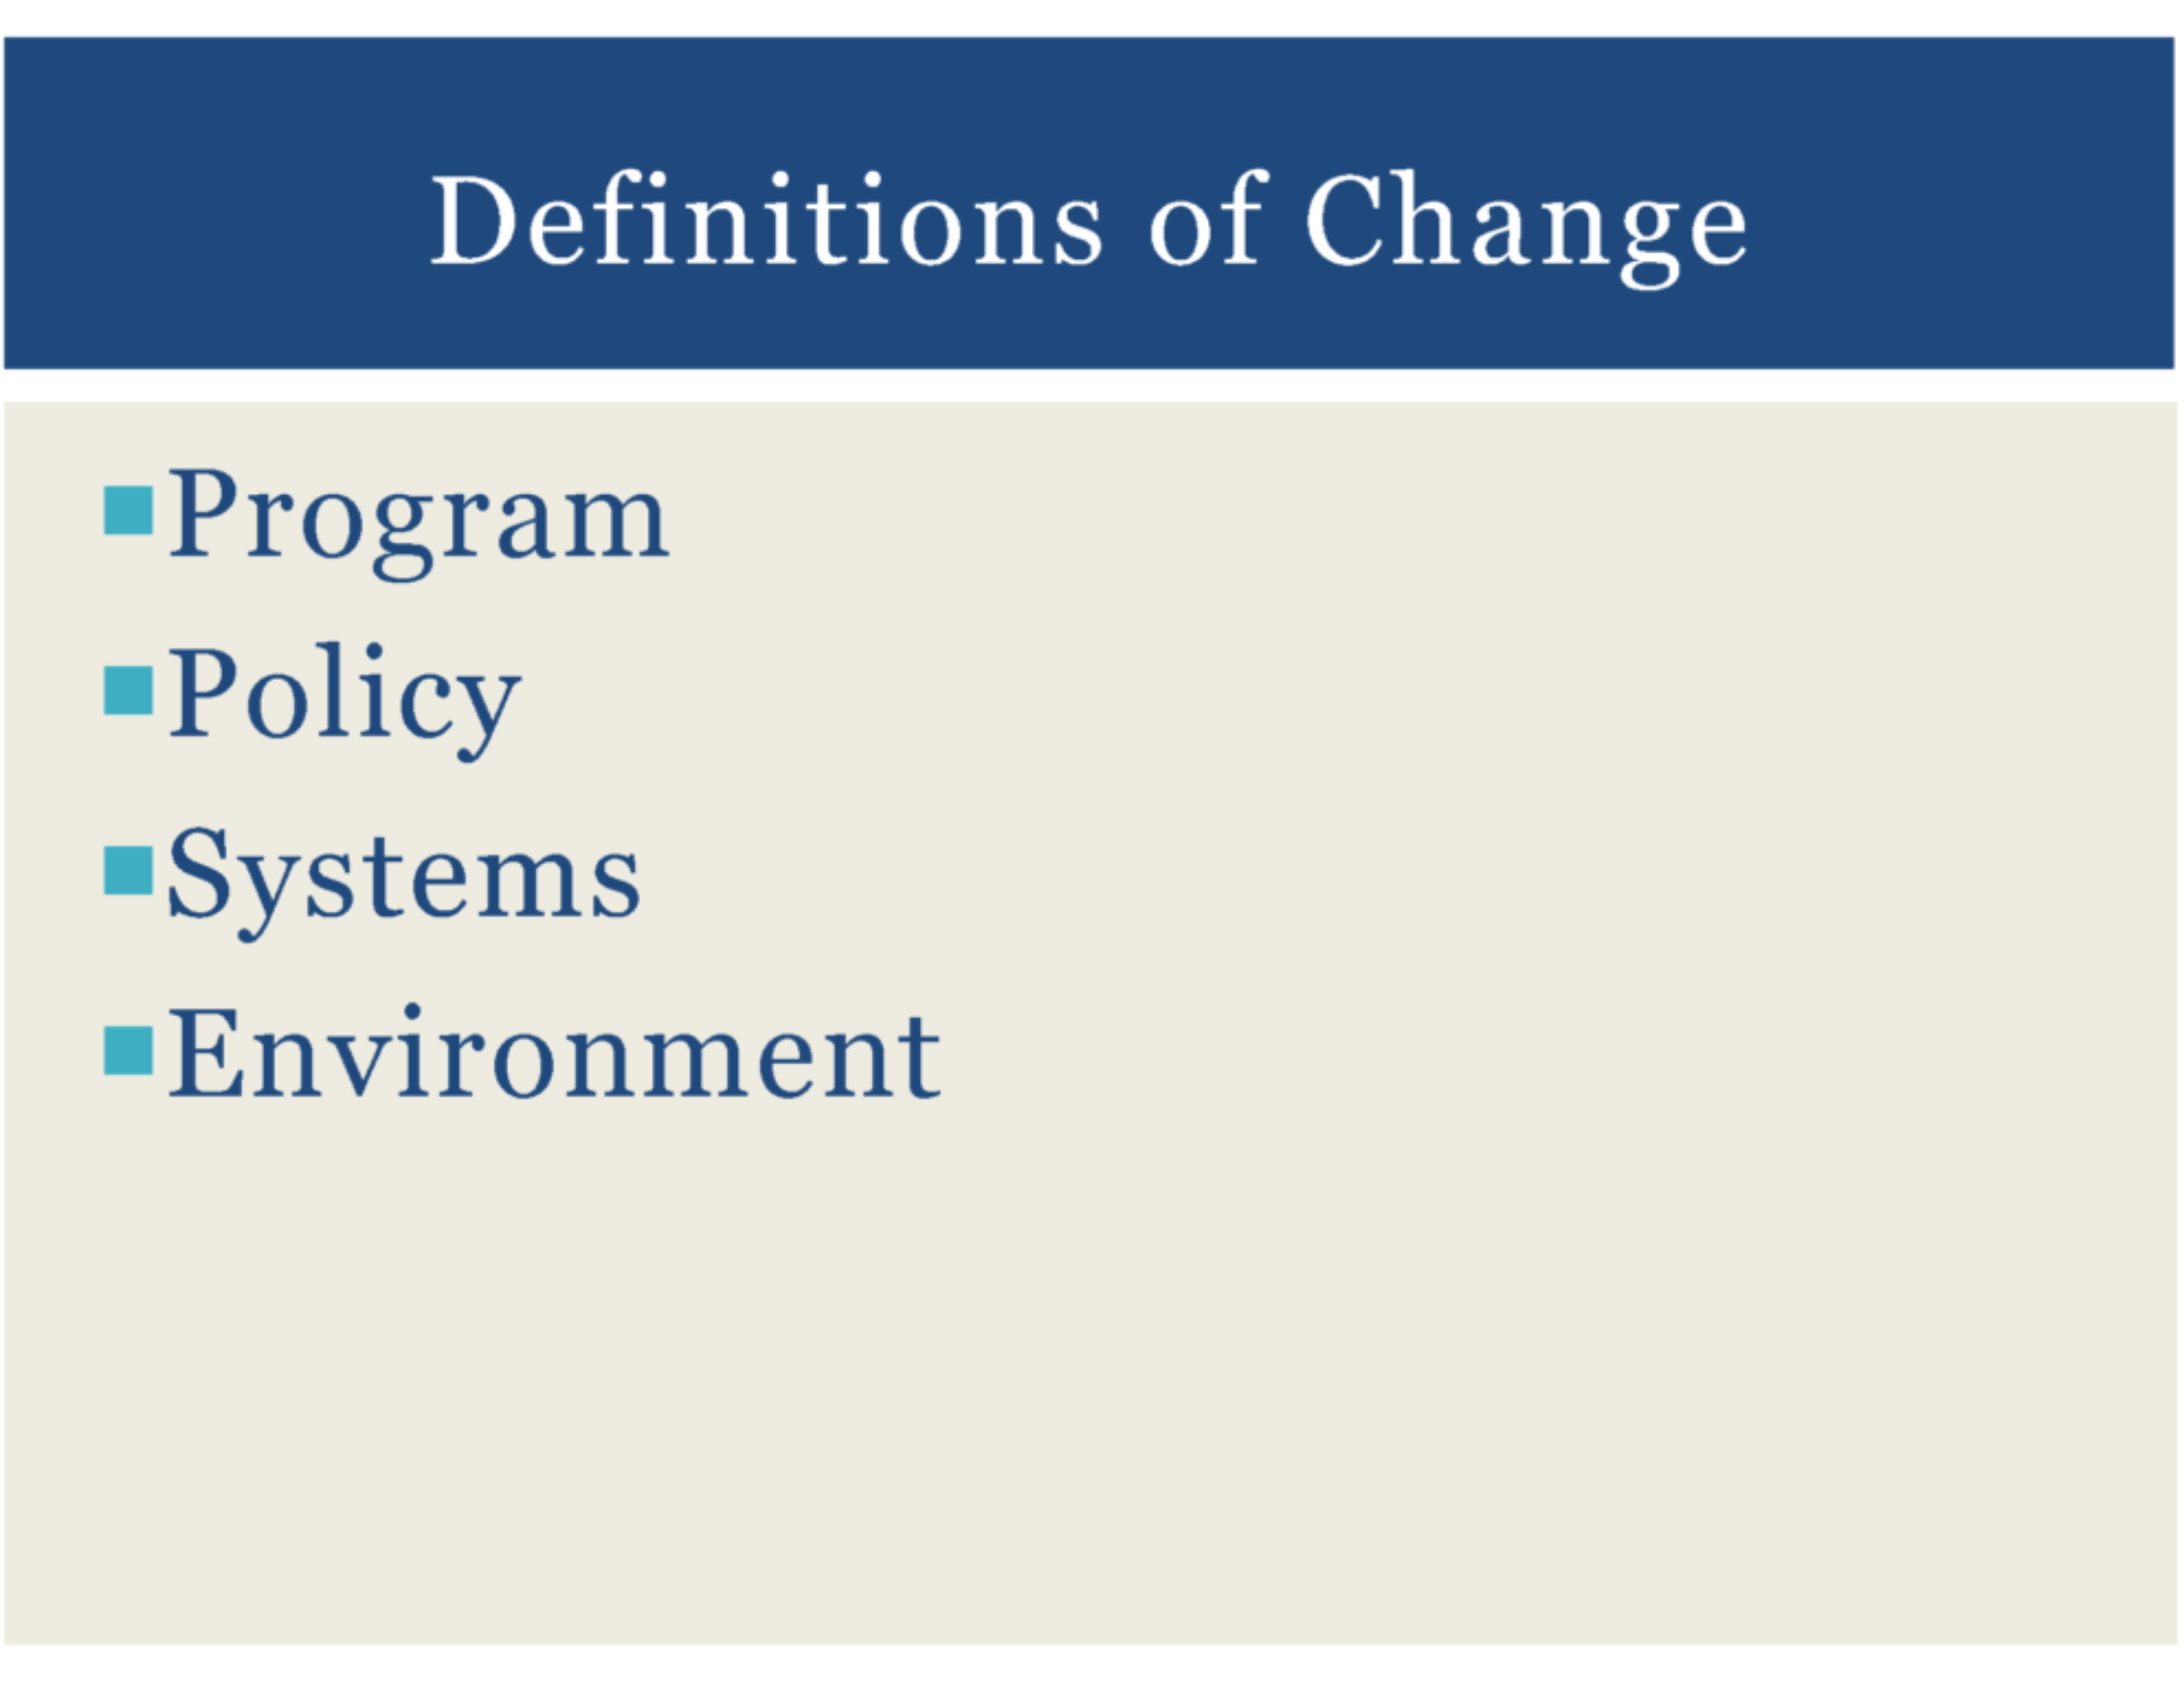 HealthMPowers Program, Policy, Environmental Change Training 3